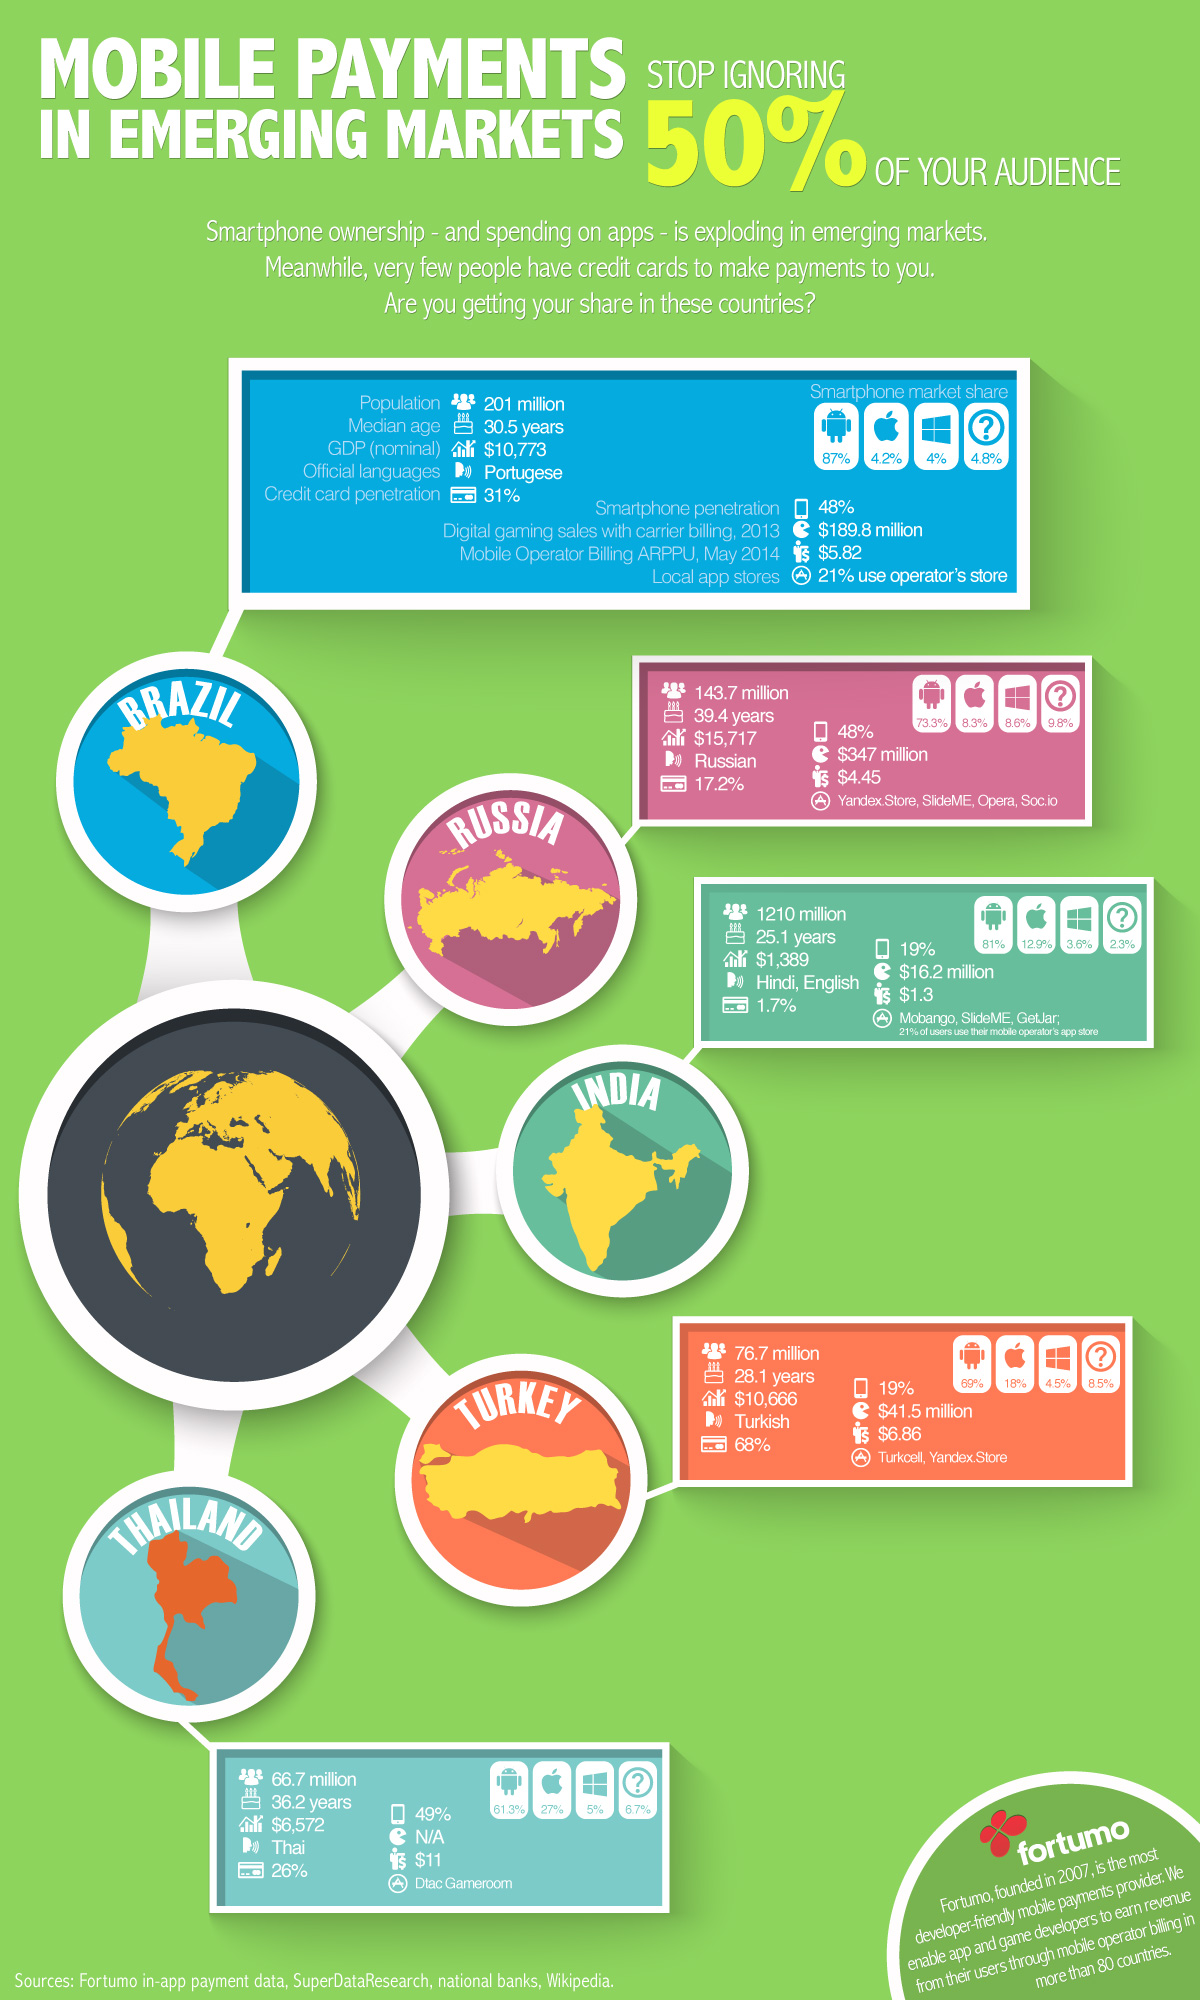 Fortumo-Fortumo-Mobile-Payments-Emerging-Markets-Infographic111